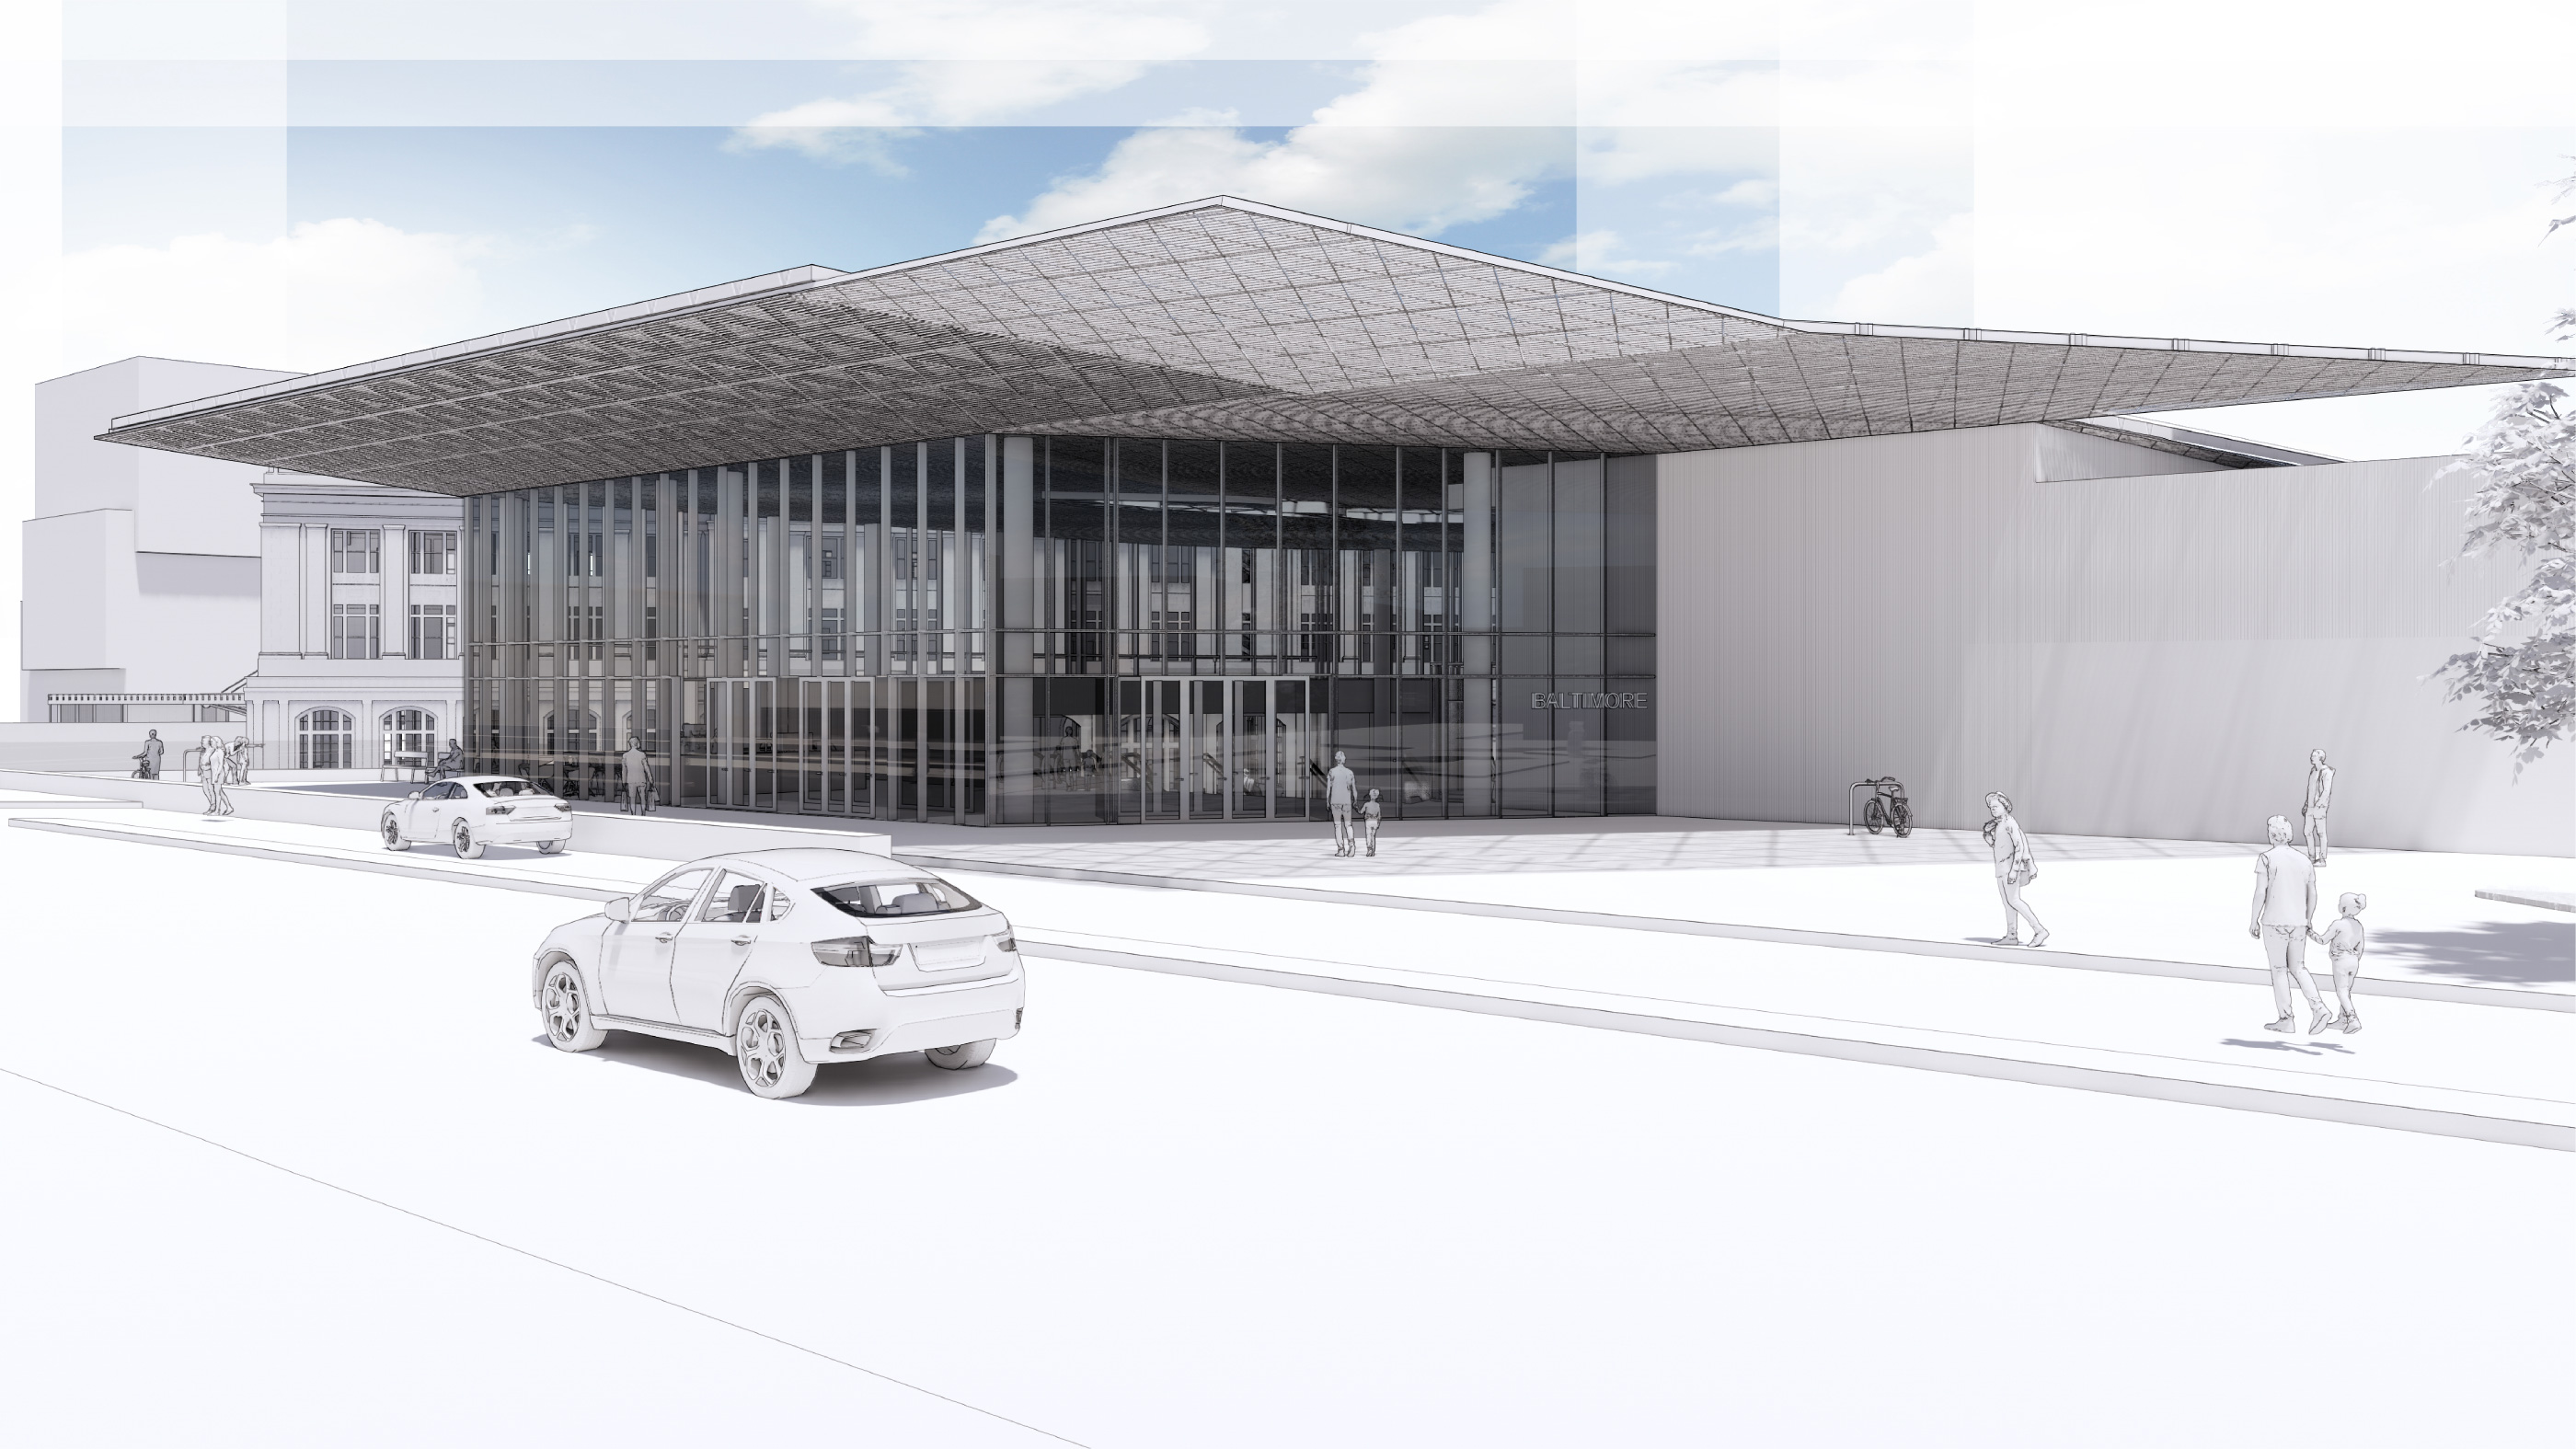 Rendering of the new baltimore amtrak station